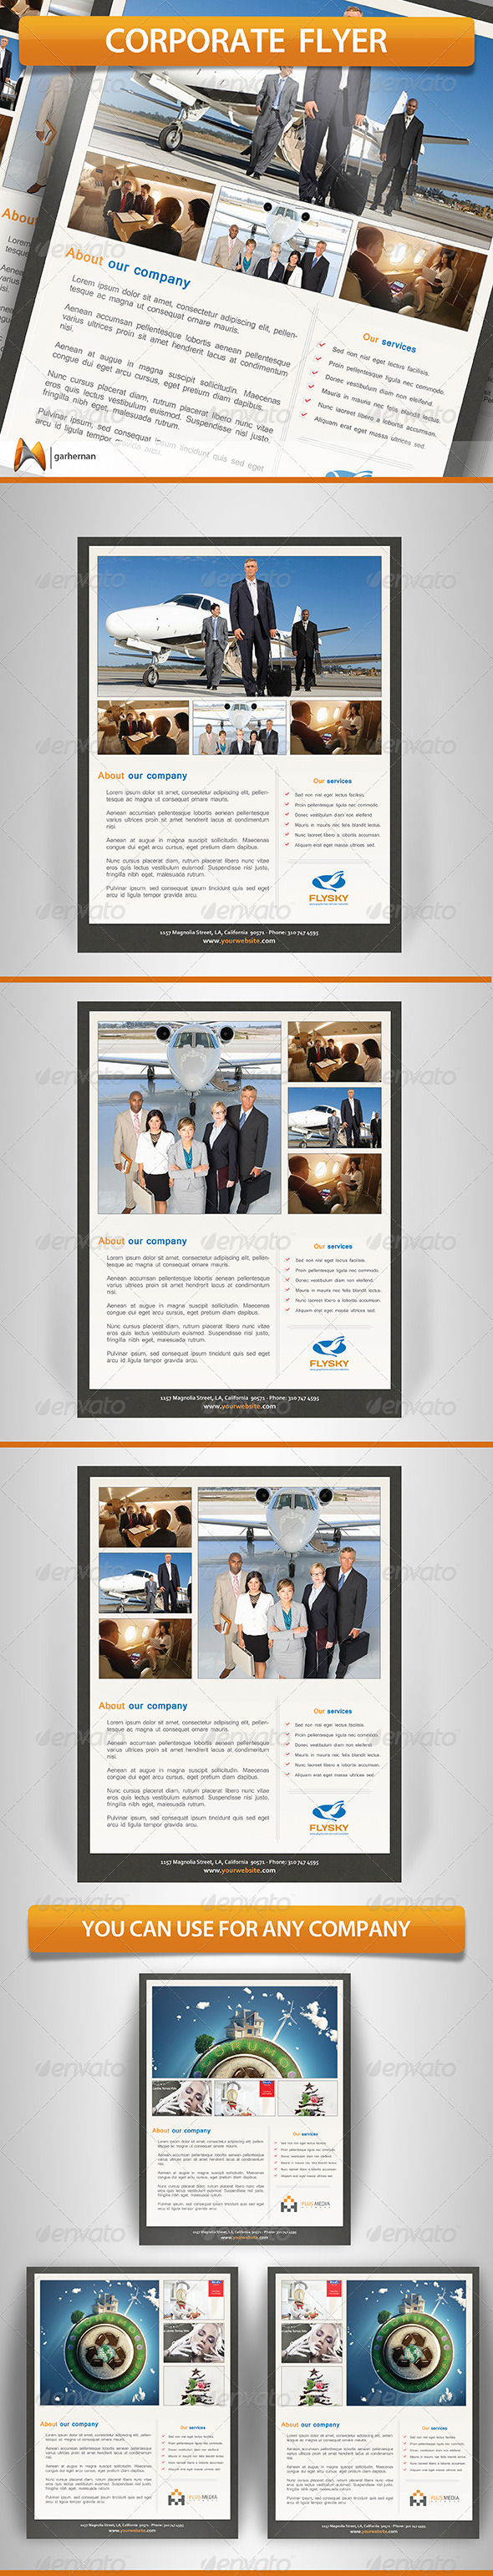 GraphicRiver Corporate Flyer Template 5550312